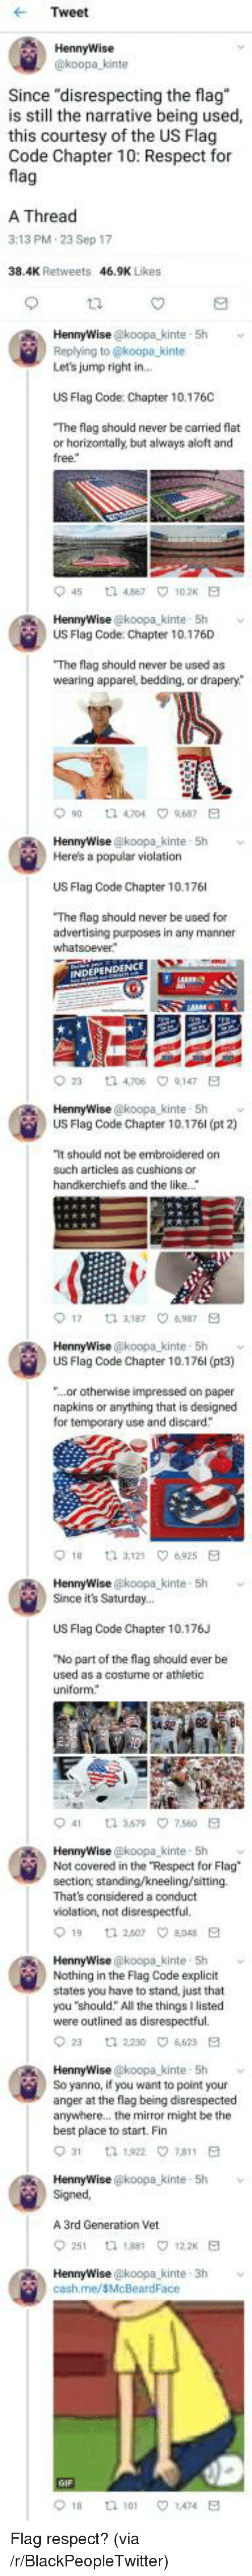 "Blackpeopletwitter, Respect, and Best: Tweet  HennyWise  koopa kinte  Since ""disrespecting the flag  is still the narrative being used,  this courtesy of the US Flag  Code Chapter 10: Respect for  fla  A Thread  3:13 PM.23 Sep 17  38.4K Retweets  46.9K Likes  HennyWise @koopa_kinte 5h  Replying to @koopa kinte  Let's jump right in  US Flag Code: Chapter 10.176C  The flag should never be carried flat  or horizontally, but always aloft and  free  45 t2 467 102K E  US Flag Code: Chapter 10.176D  The flag should never be used as  wearing apparel, bedding, or drapery*  90 t 4704 9687 E  HennyWise @koopa kinte 5h  Here's a popular violation  US Flag Code Chapter 10.176  The flag should never be used for  advertising purposes in any manner  23  ta 4,706  9,147  HennyWise @koopa kinte- Sh  US Flag Code Chapter 10.176l (pt 2)  It should not be embroidered on  such articles as cushions or  handkerchiefs and the like.  017  3,187 ㅇ6,987  HennyWise @koopa kinte- 5h  US Flag Code Chapter 10.176l (pt3)  ...or otherwise impressed on paper  napkins or anything that is designed  for temporary use and discard  HennyWise @koopa-kinte , 5h  Since it's Saturday..  ﹀  US Flag Code Chapter 10.176J  No part of the flag should ever be  used as a costurne or athletic  uniform  41  3.579\7.560  HennyWise @koopa kinte 5h  Not covered in the Respect for Flag  section, standing/kneeling/sitting.  That's considered a conduct  violation, not disrespectful.  19 1 260708E  HennyWise @koopa kinte 5h  Nothing in the Flag Code explicit  states you have to stand, just that  you ""should: All the things I listed  were outlined as disrespectful.  2  2230 4623 E  HennyWise @koopa kinte 5h v  So yanno, if you want to point your  anger at the flag being disrespected  anywhere.. the mirror might be the  best place to start. Fin  HennyWise @koopa kinte 5h  Signed  A 3rd Generation Vet  251 th 188 122 E  cash.me/sMcBeardFace  018  tl 101  1.474 <p>Flag respect? (via /r/BlackPeopleTwitter)</p>"